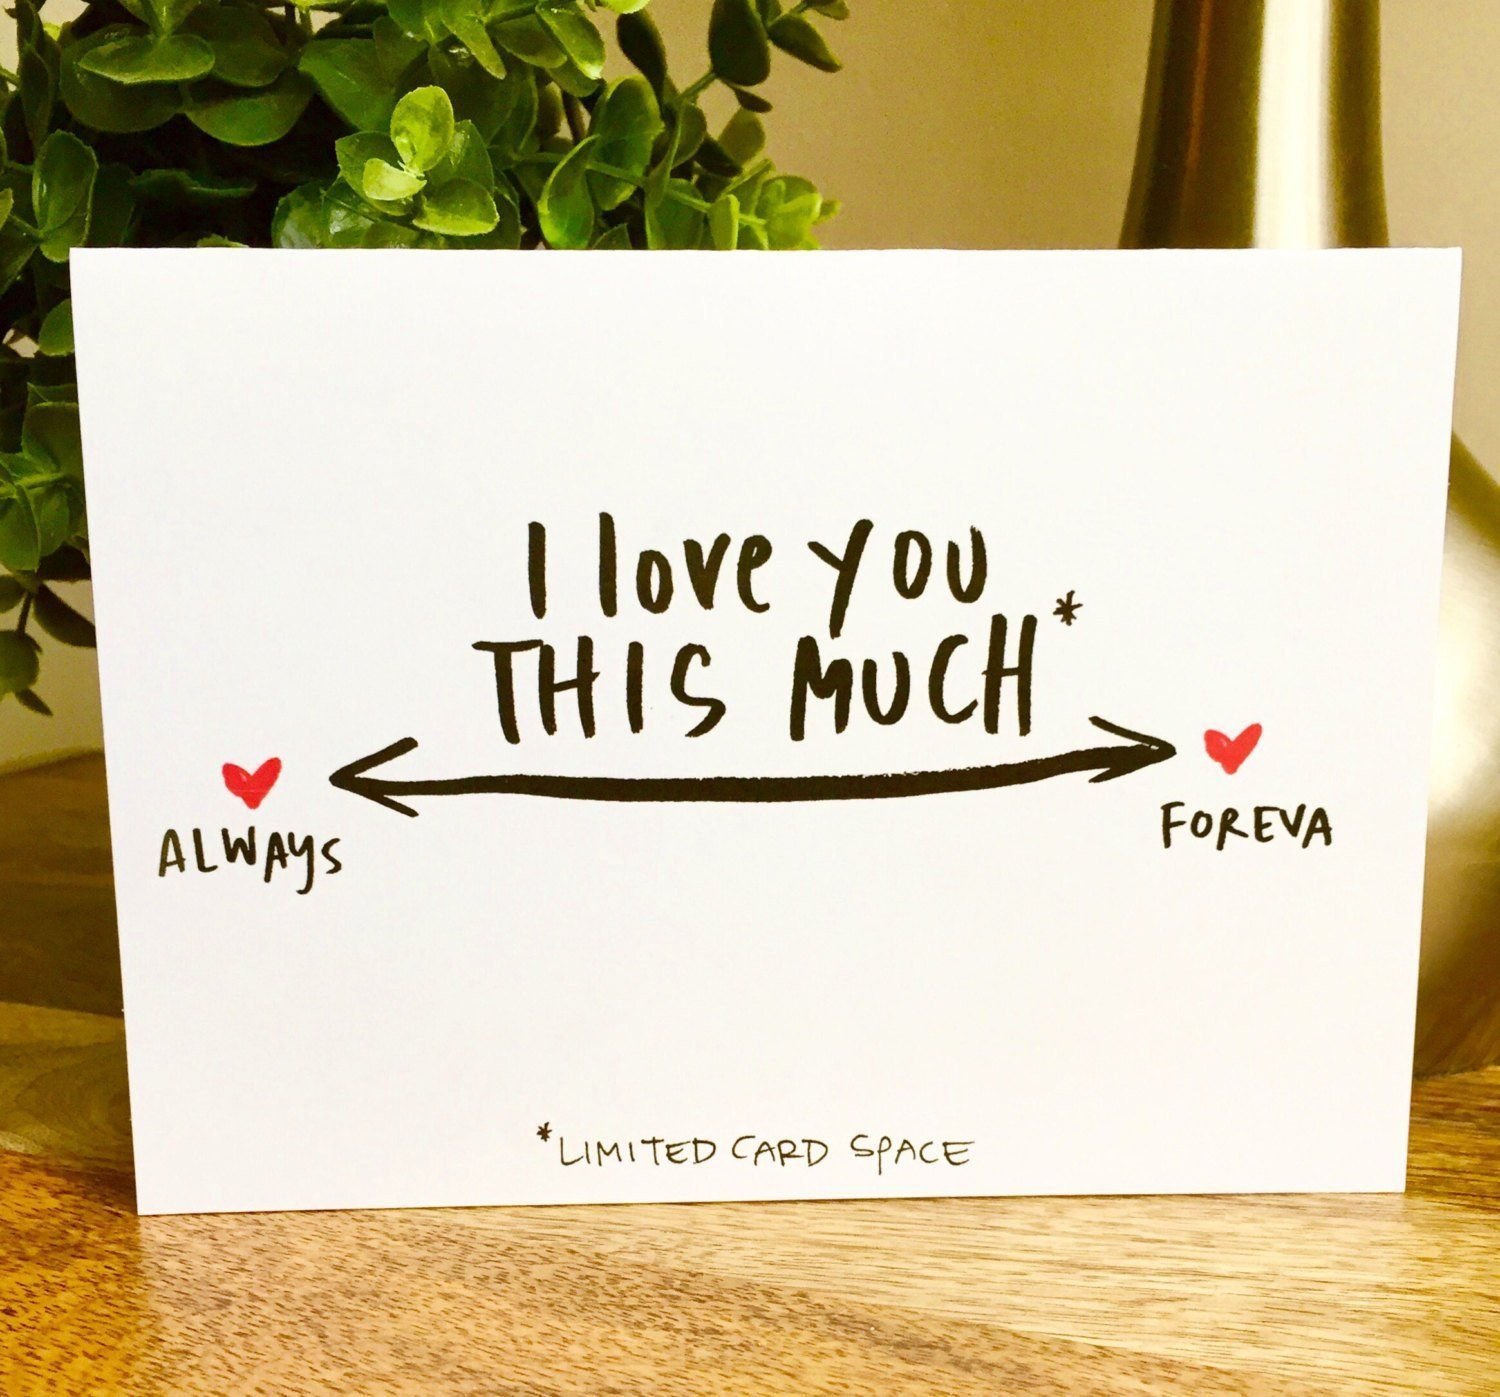 Anniversary Cards For Boyfriend Year Anniversary Gifts Girlfriend Gifts Anniv Anniversary Cards For Boyfriend Cards For Boyfriend Anniversary Cards For Wife